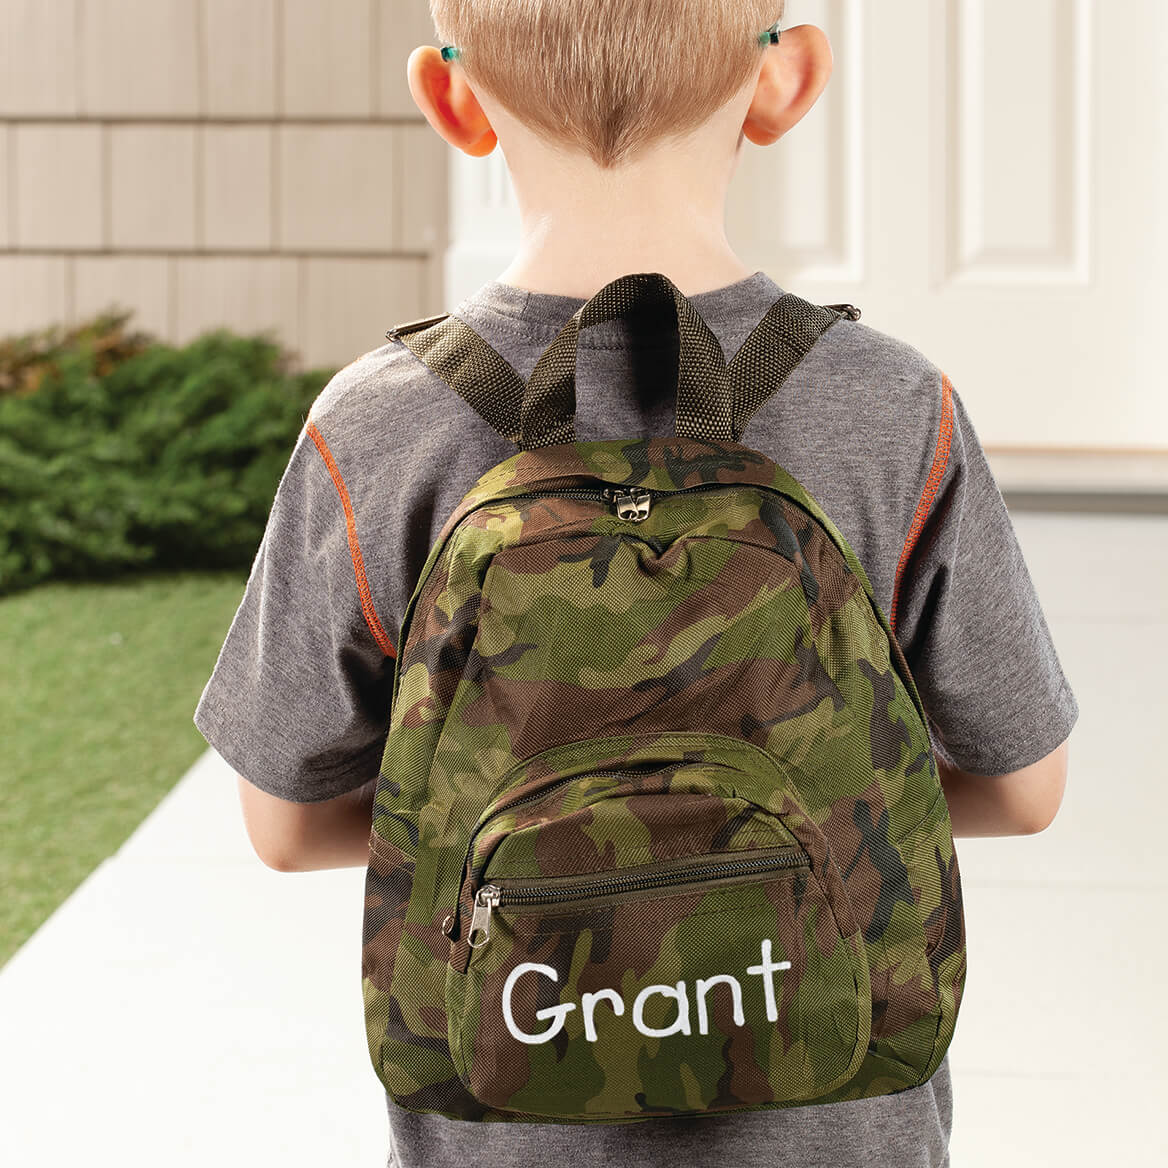 Personalized Mini Camouflage Backpack-368047